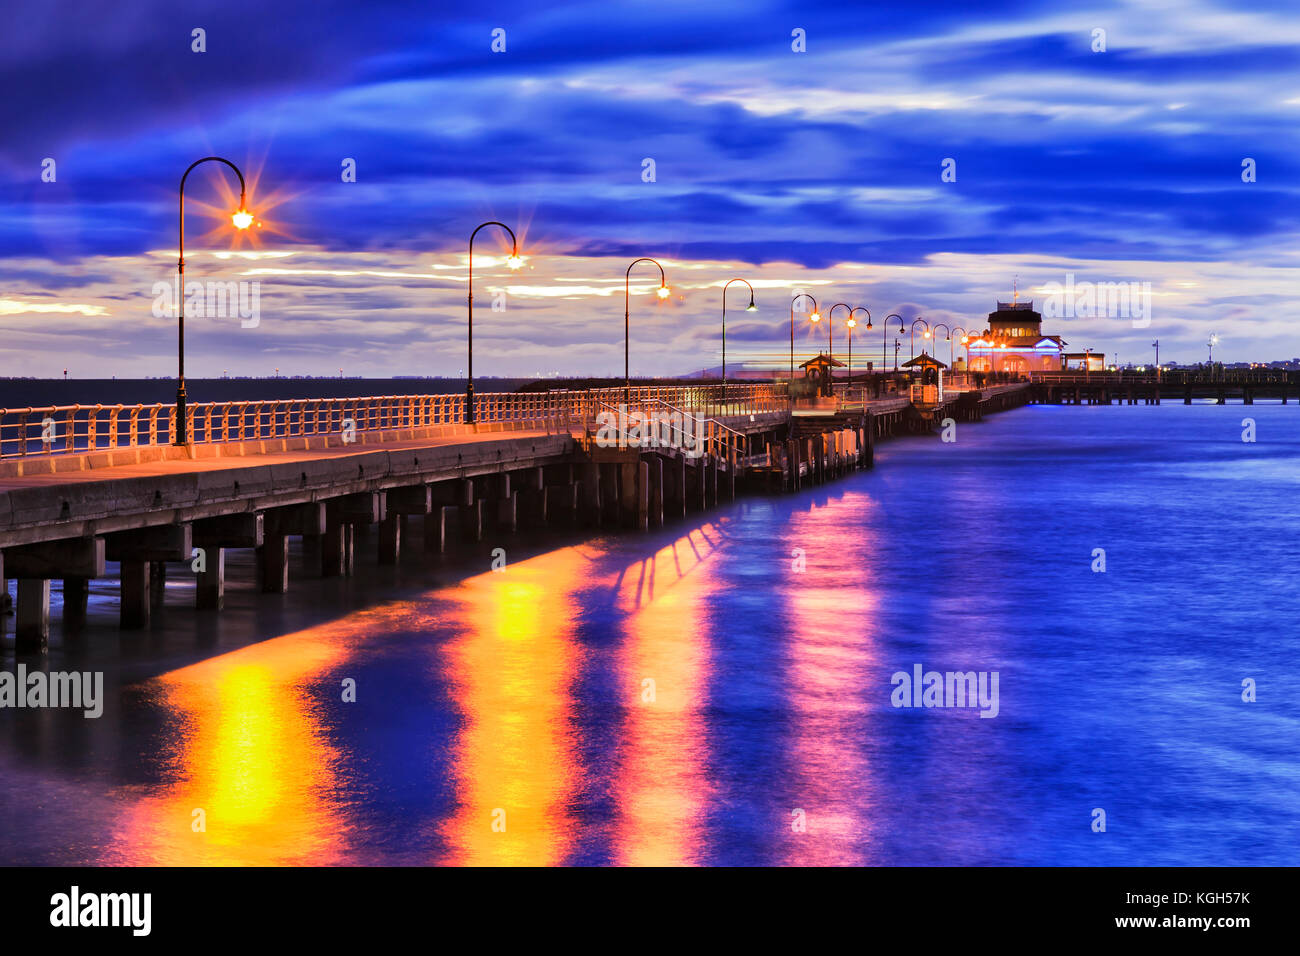 Stormy sunset at Port Philip bay around St Kilda beach historic timber Jetty with street light illumination reflecting - Stock Image